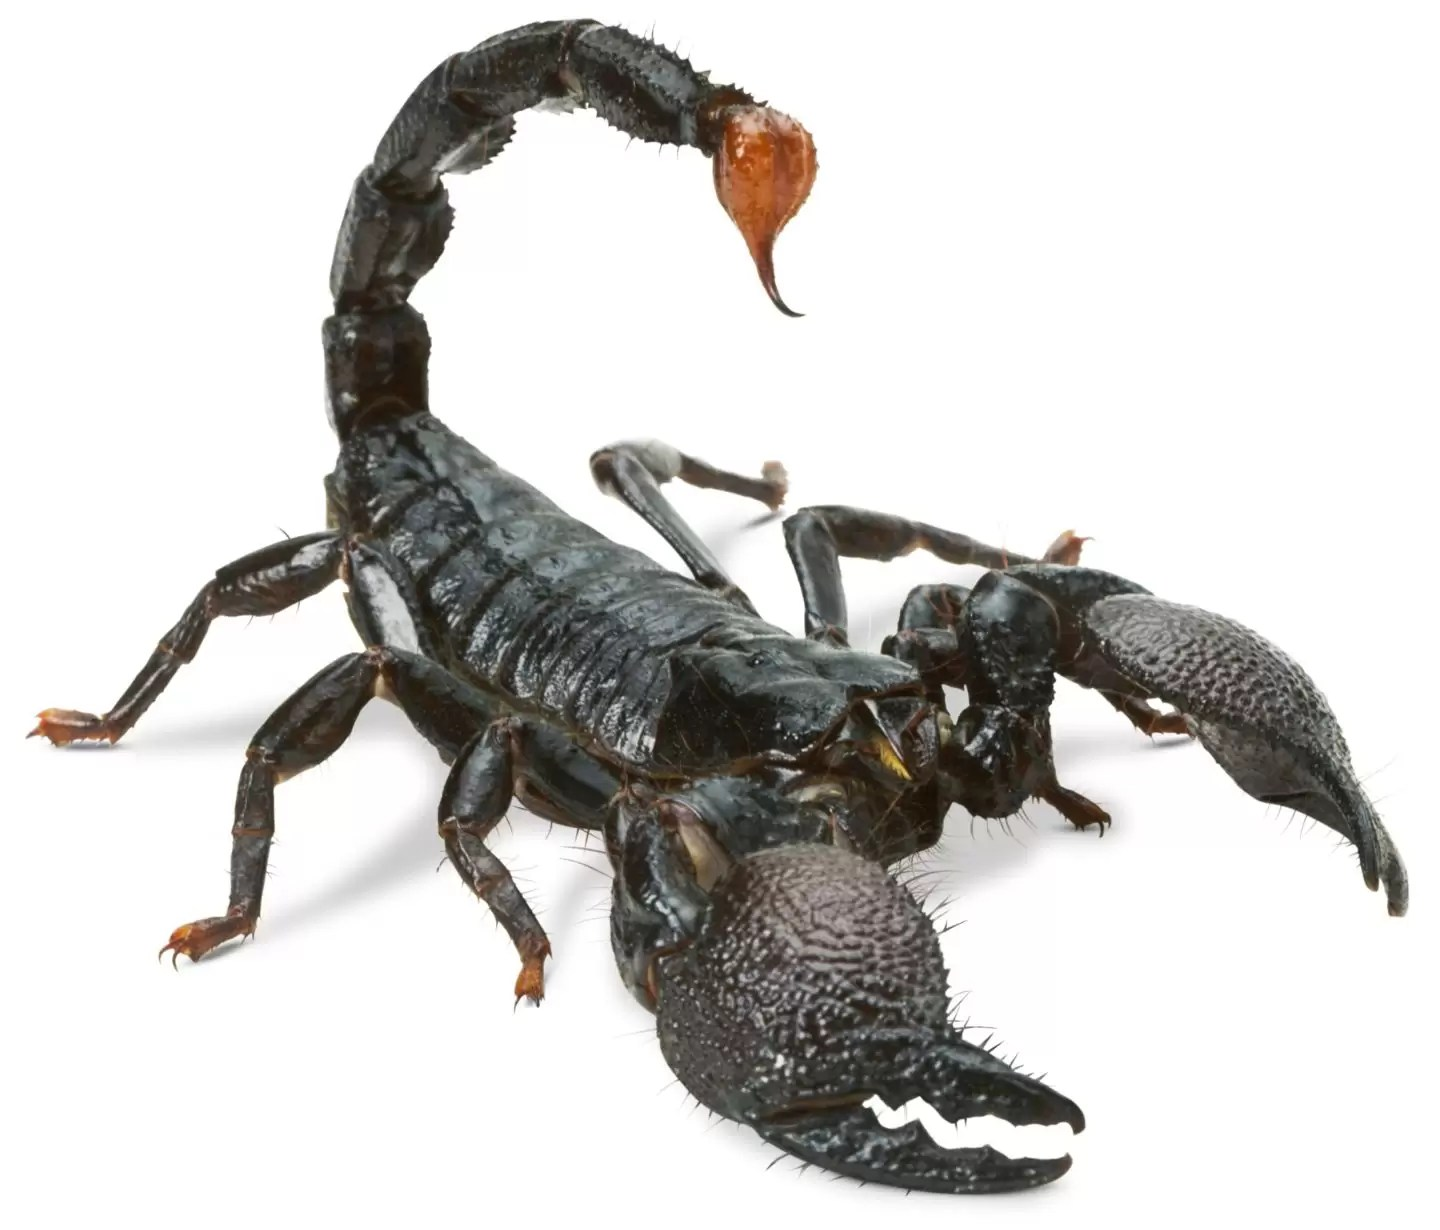 Scorpion Facts and FAQs: Everything You Need to Know - Pest Hacks